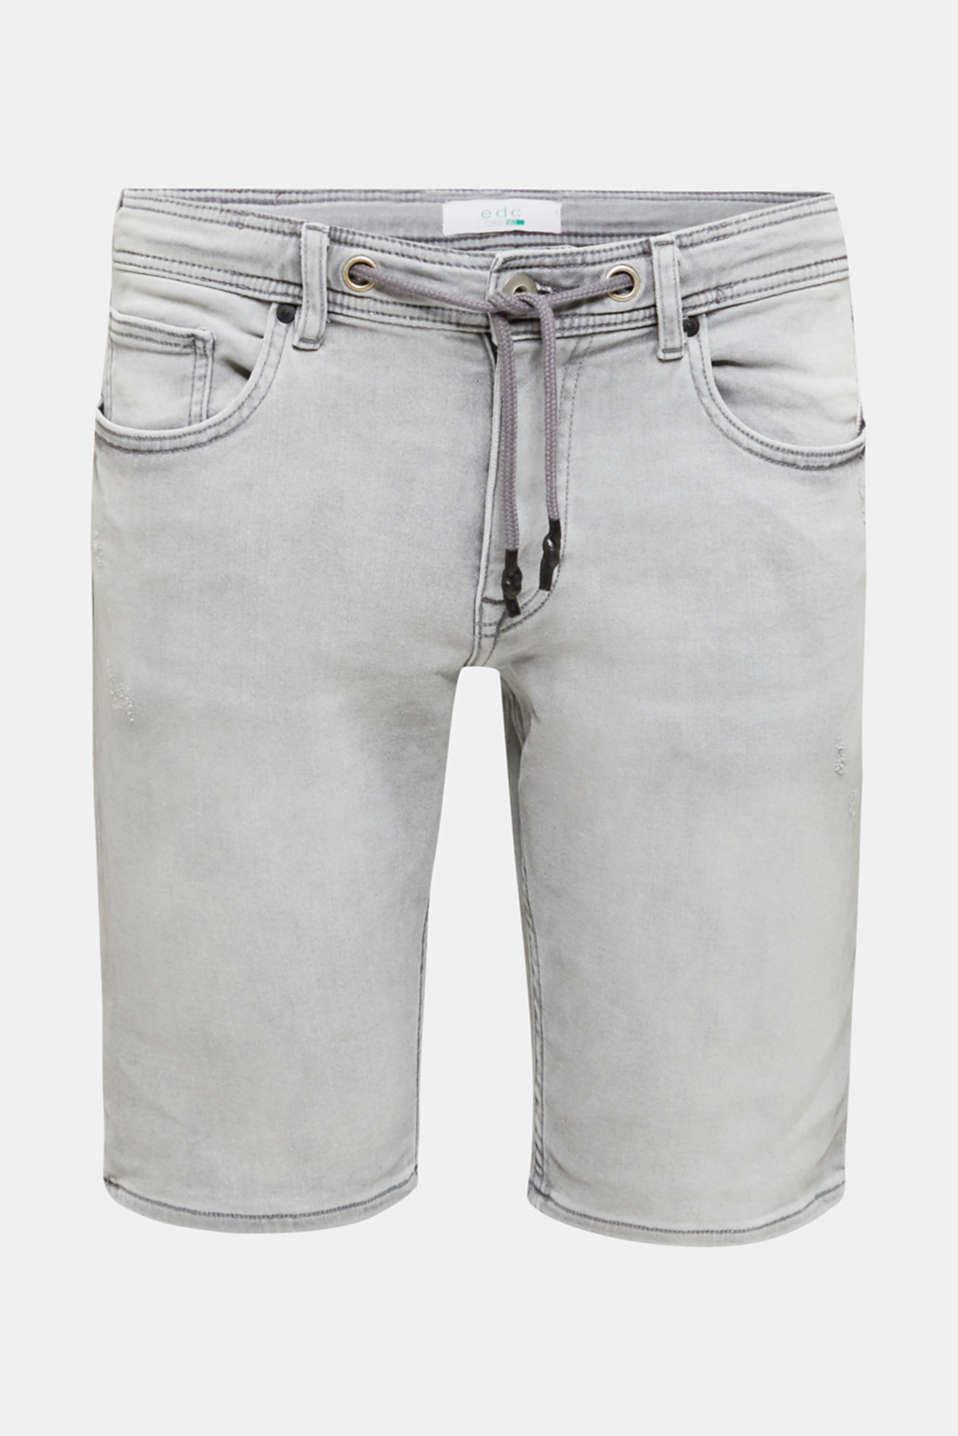 Denim shorts in a tracksuit bottom-style fabric, GREY BLEACHED, detail image number 5